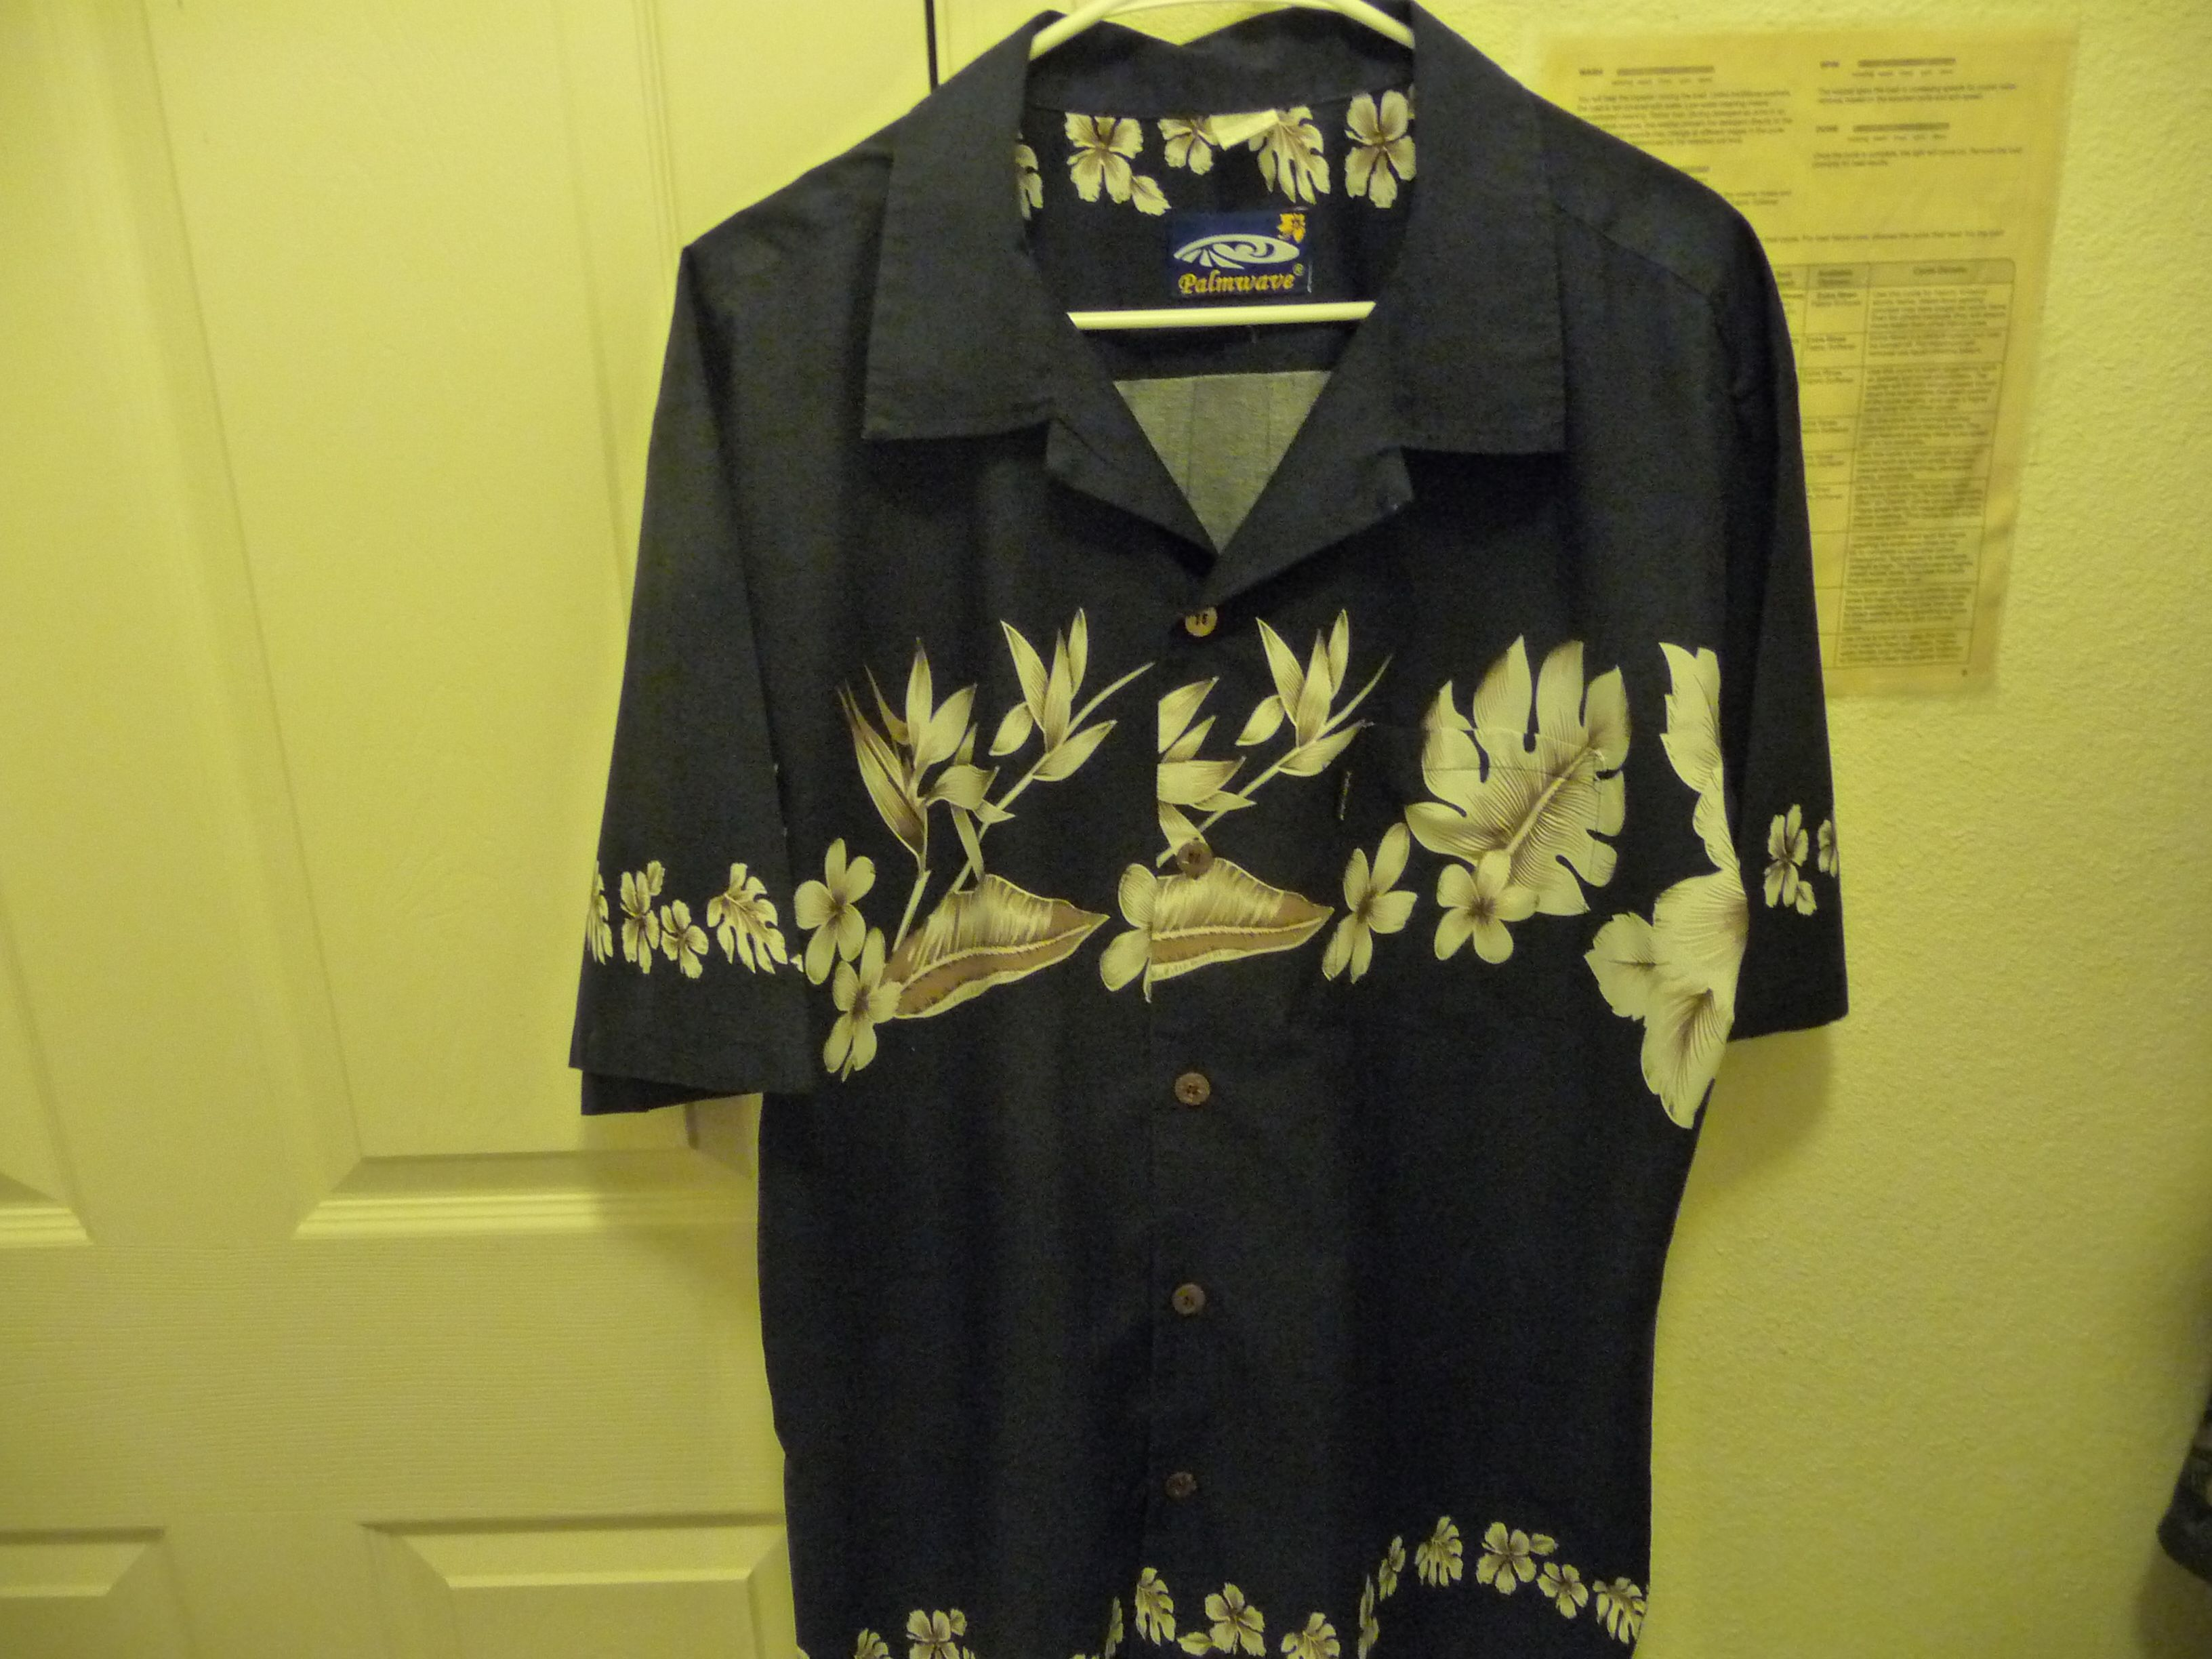 dab7dd37 Tommy Bahama Embroidered Silk Shirts Grape expectations Men's Aloha Shirt L  S/S | Vintage Aloha Shirts | Embroidered silk, Shirts, Aloha shirt